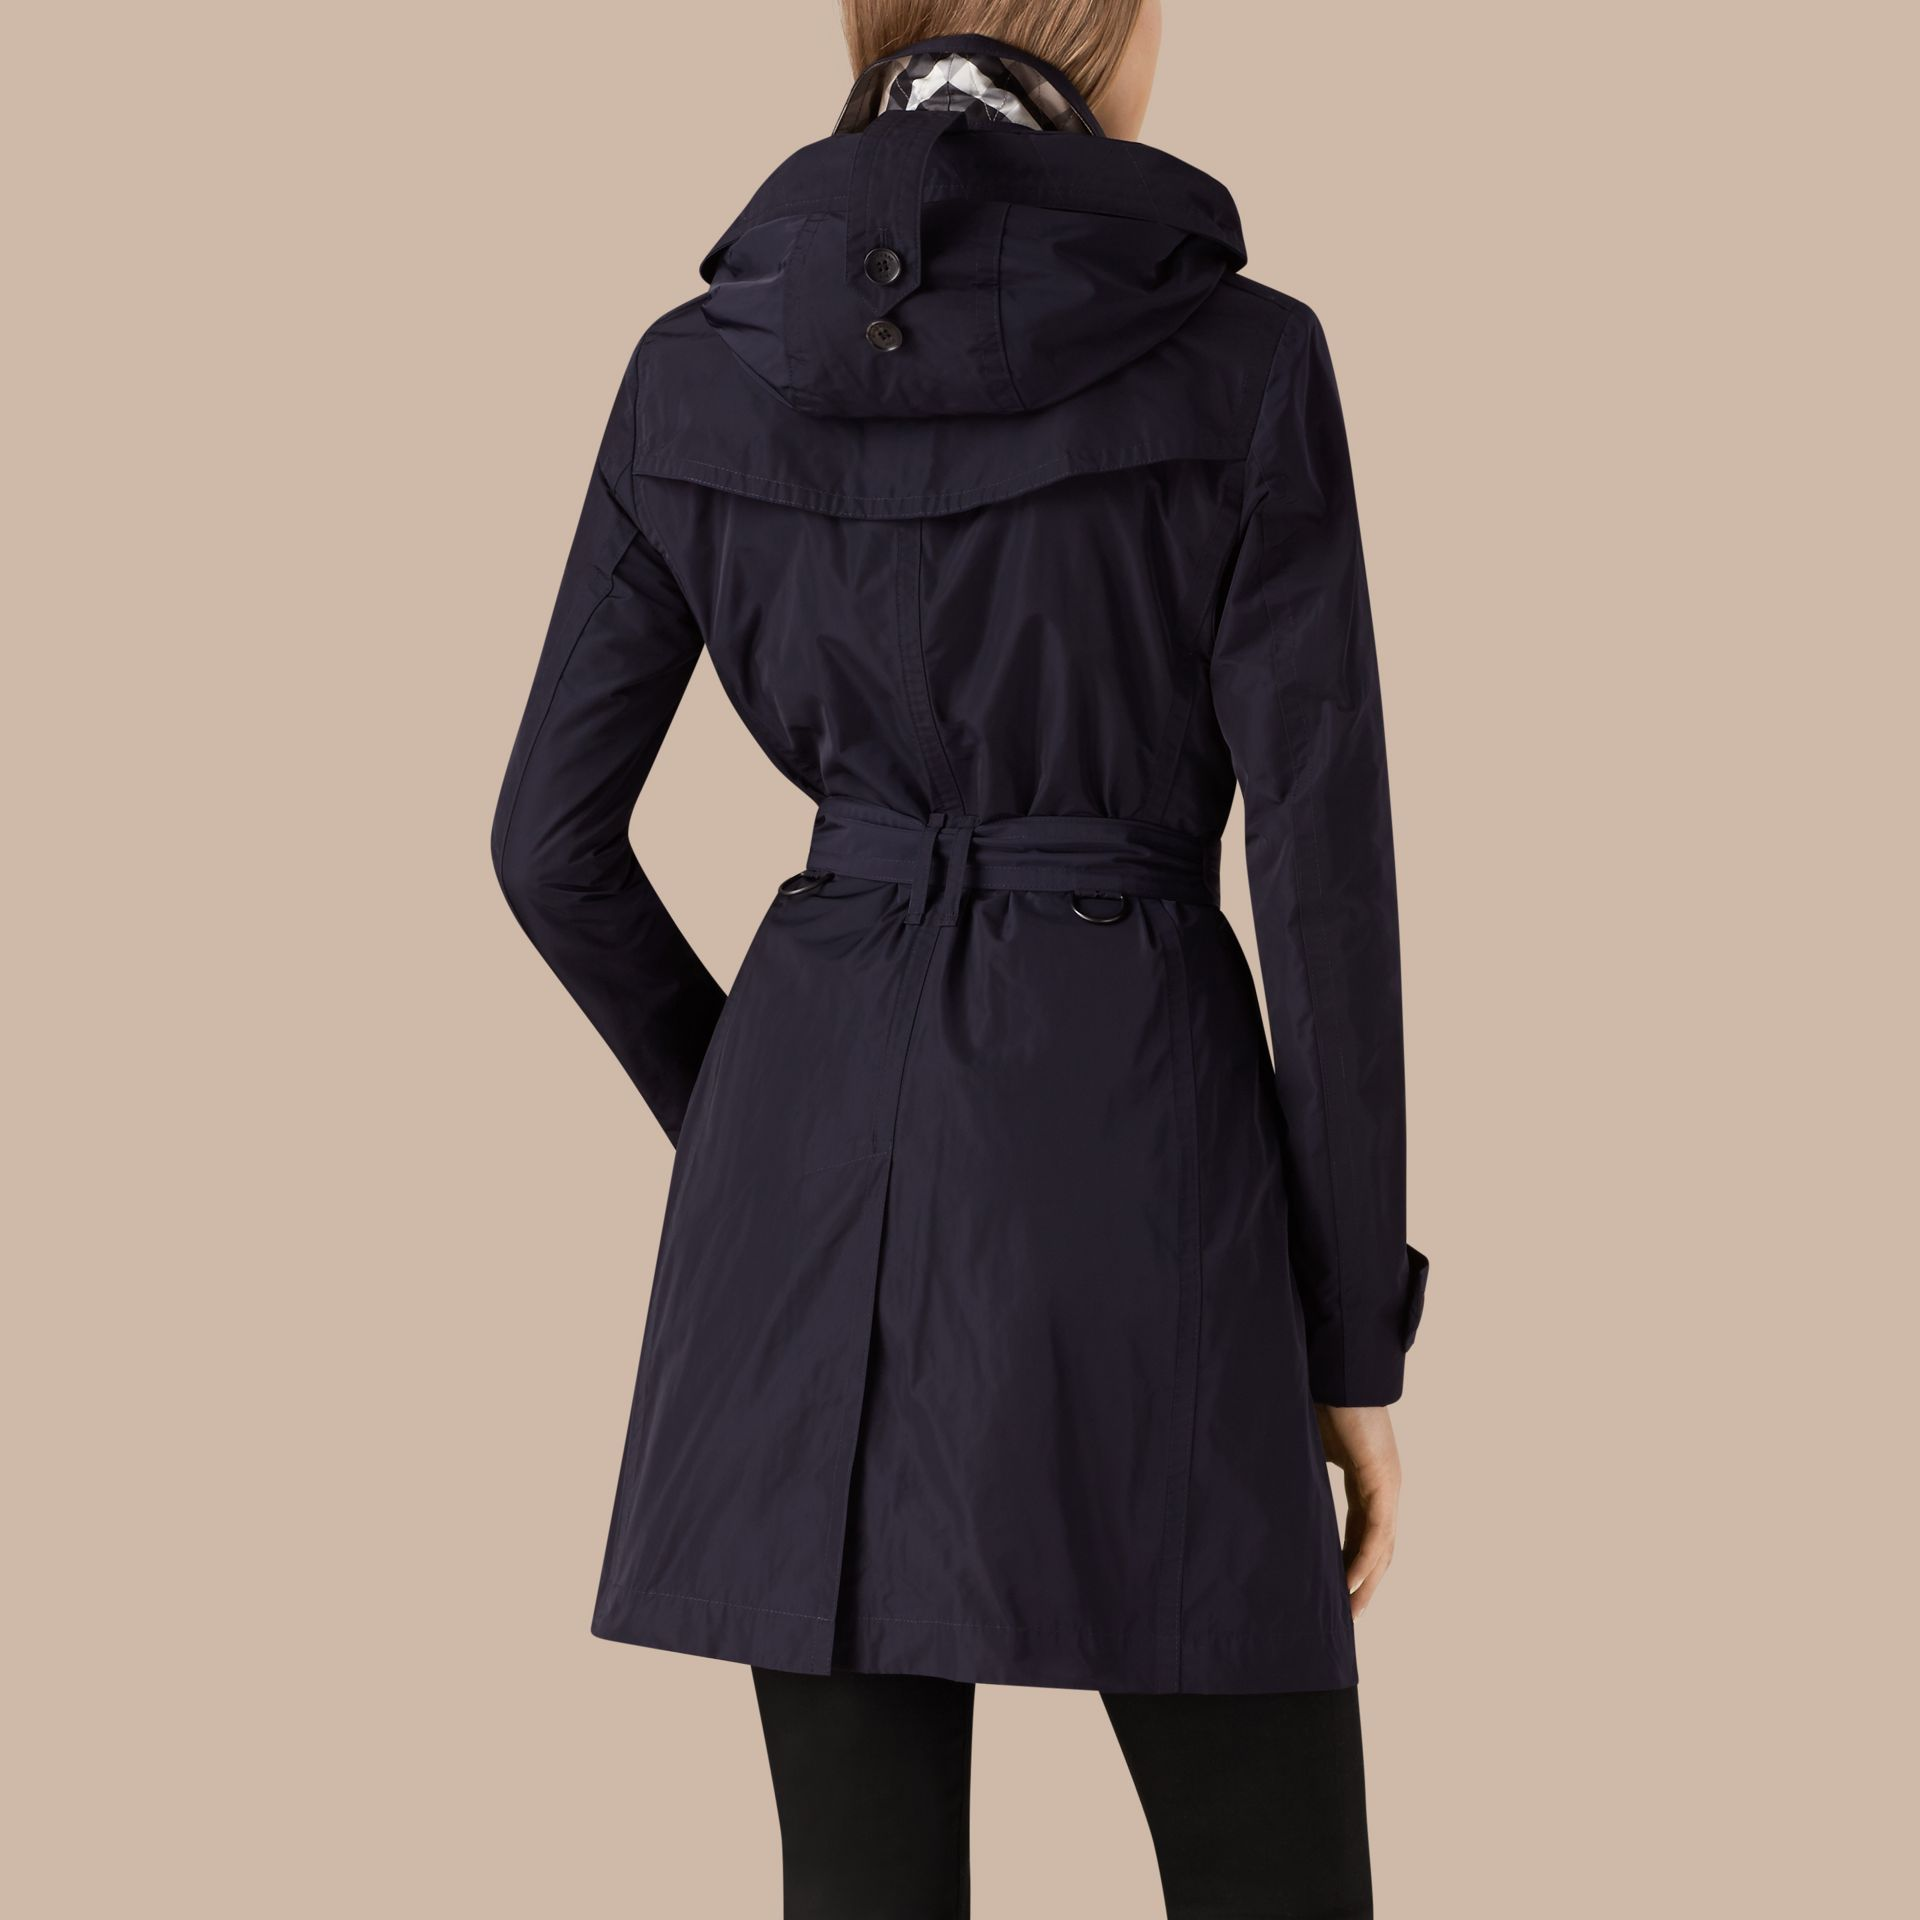 Taffeta Trench Coat with Detachable Hood Navy - gallery image 3